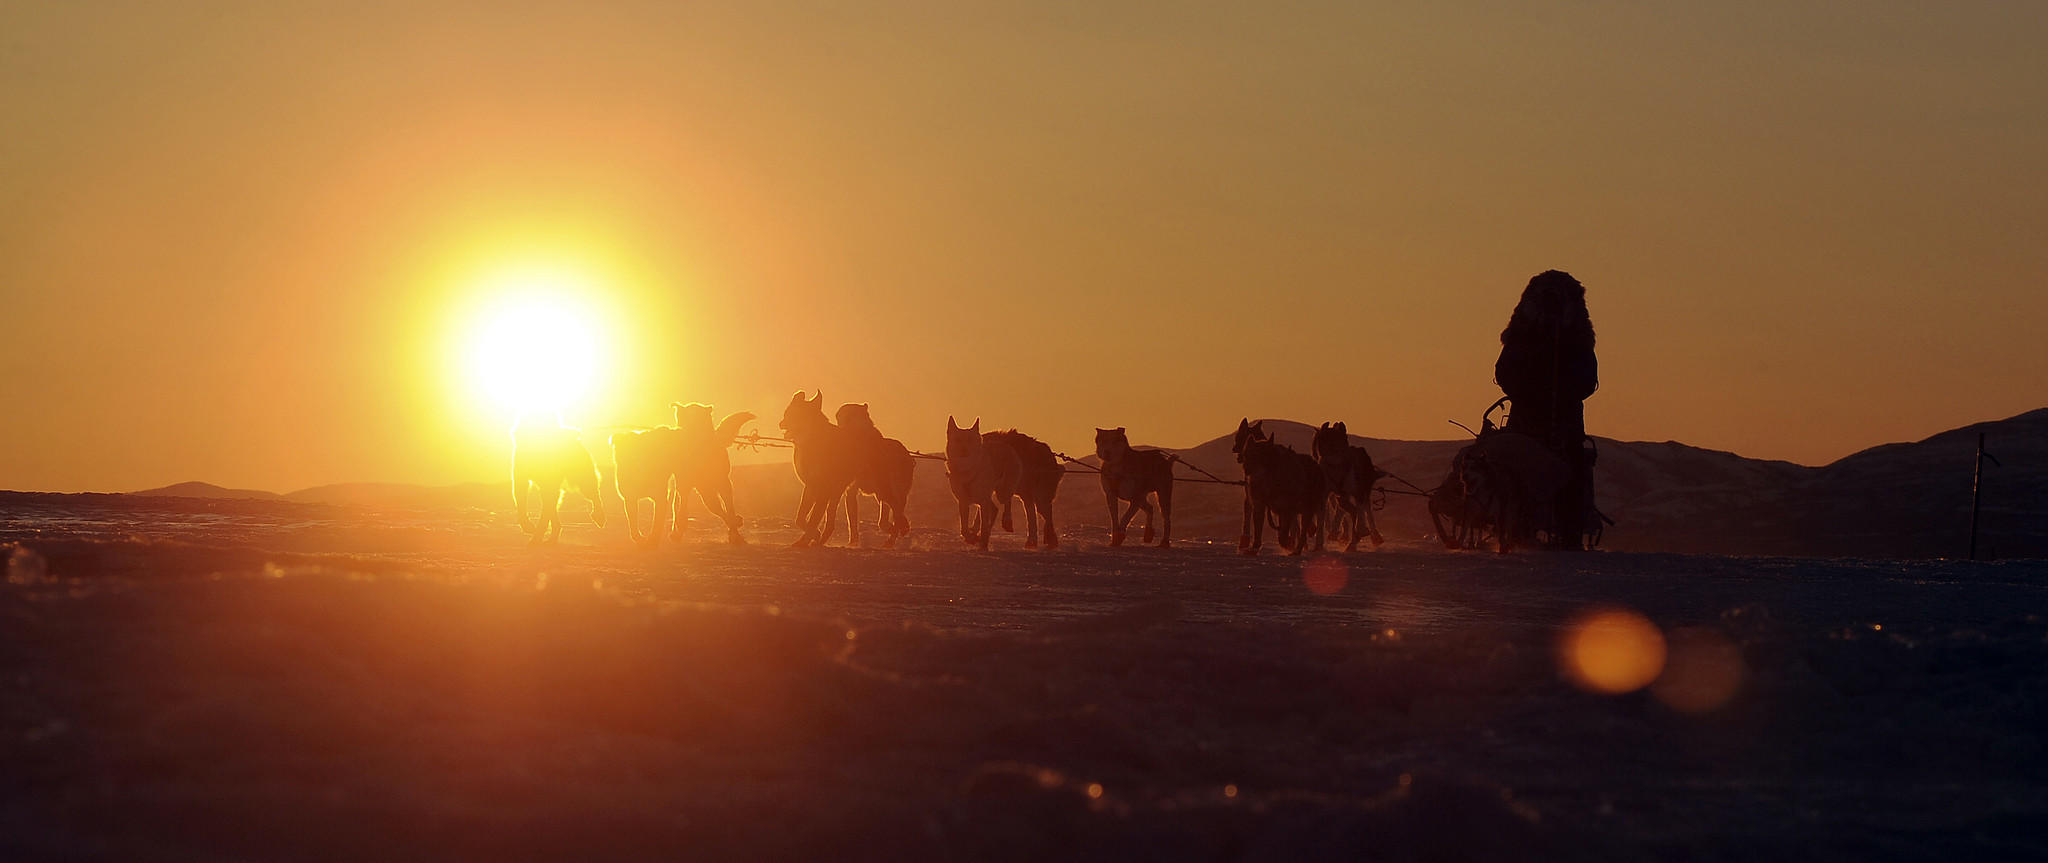 Iditarod musher John Baker of Kotzebue, Alaska, comes into the Unalakleet checkpoint at sunrise during the Iditarod Trail Sled Dog Race.